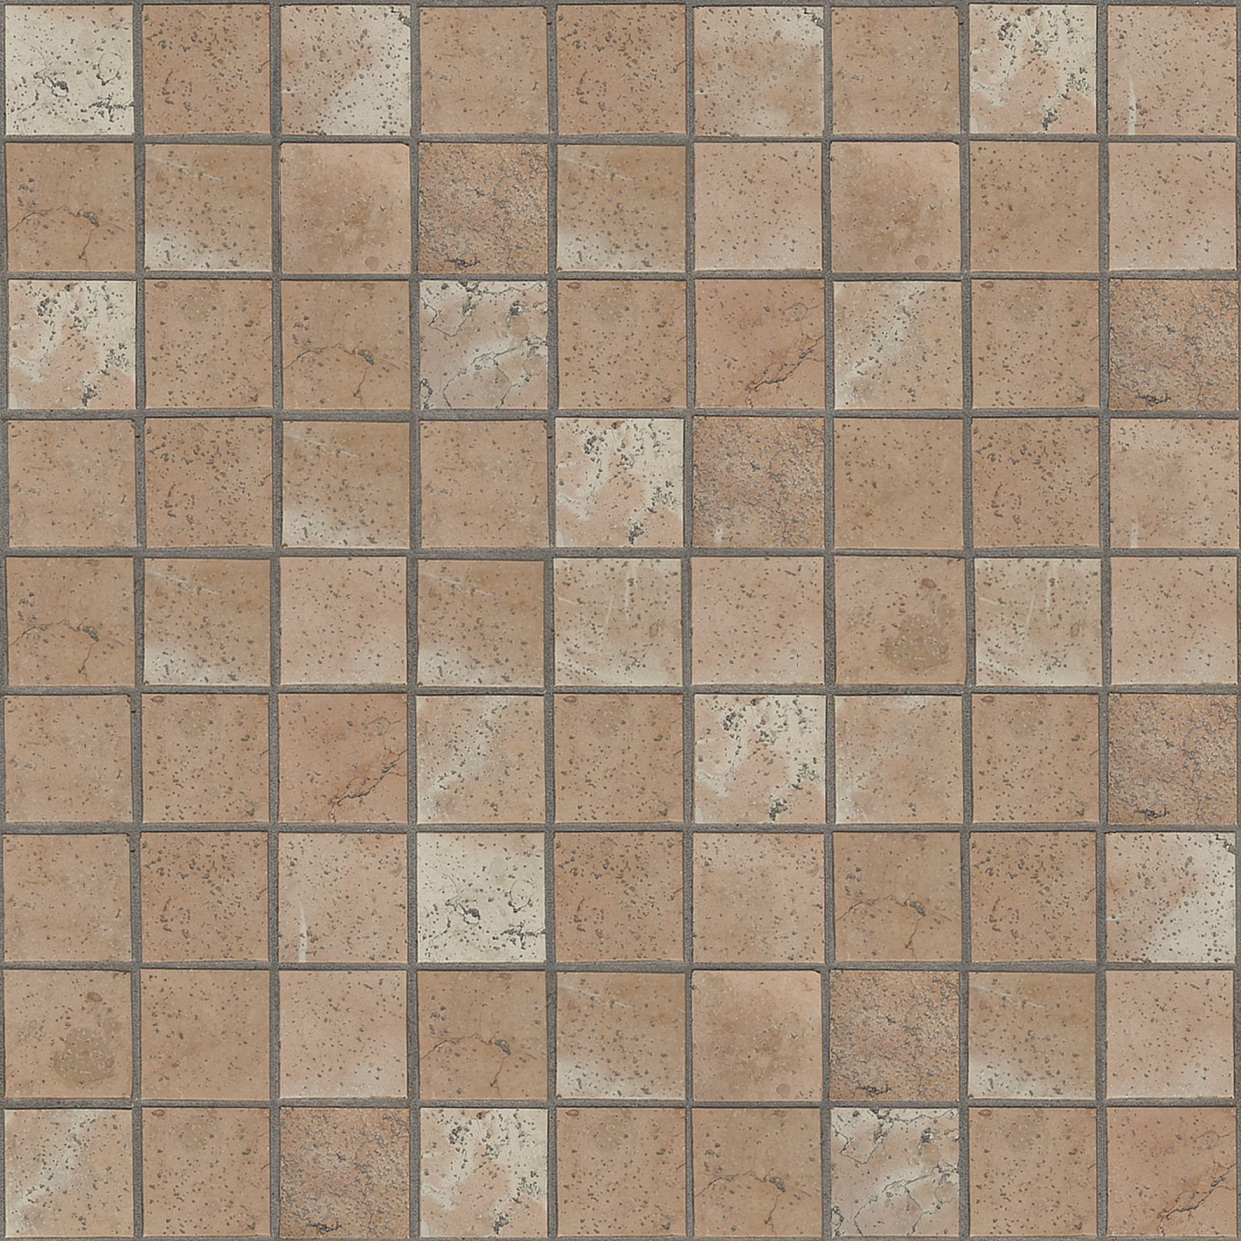 Subway Backsplash Tile Kitchen Tiles Texture Home Design Roosa